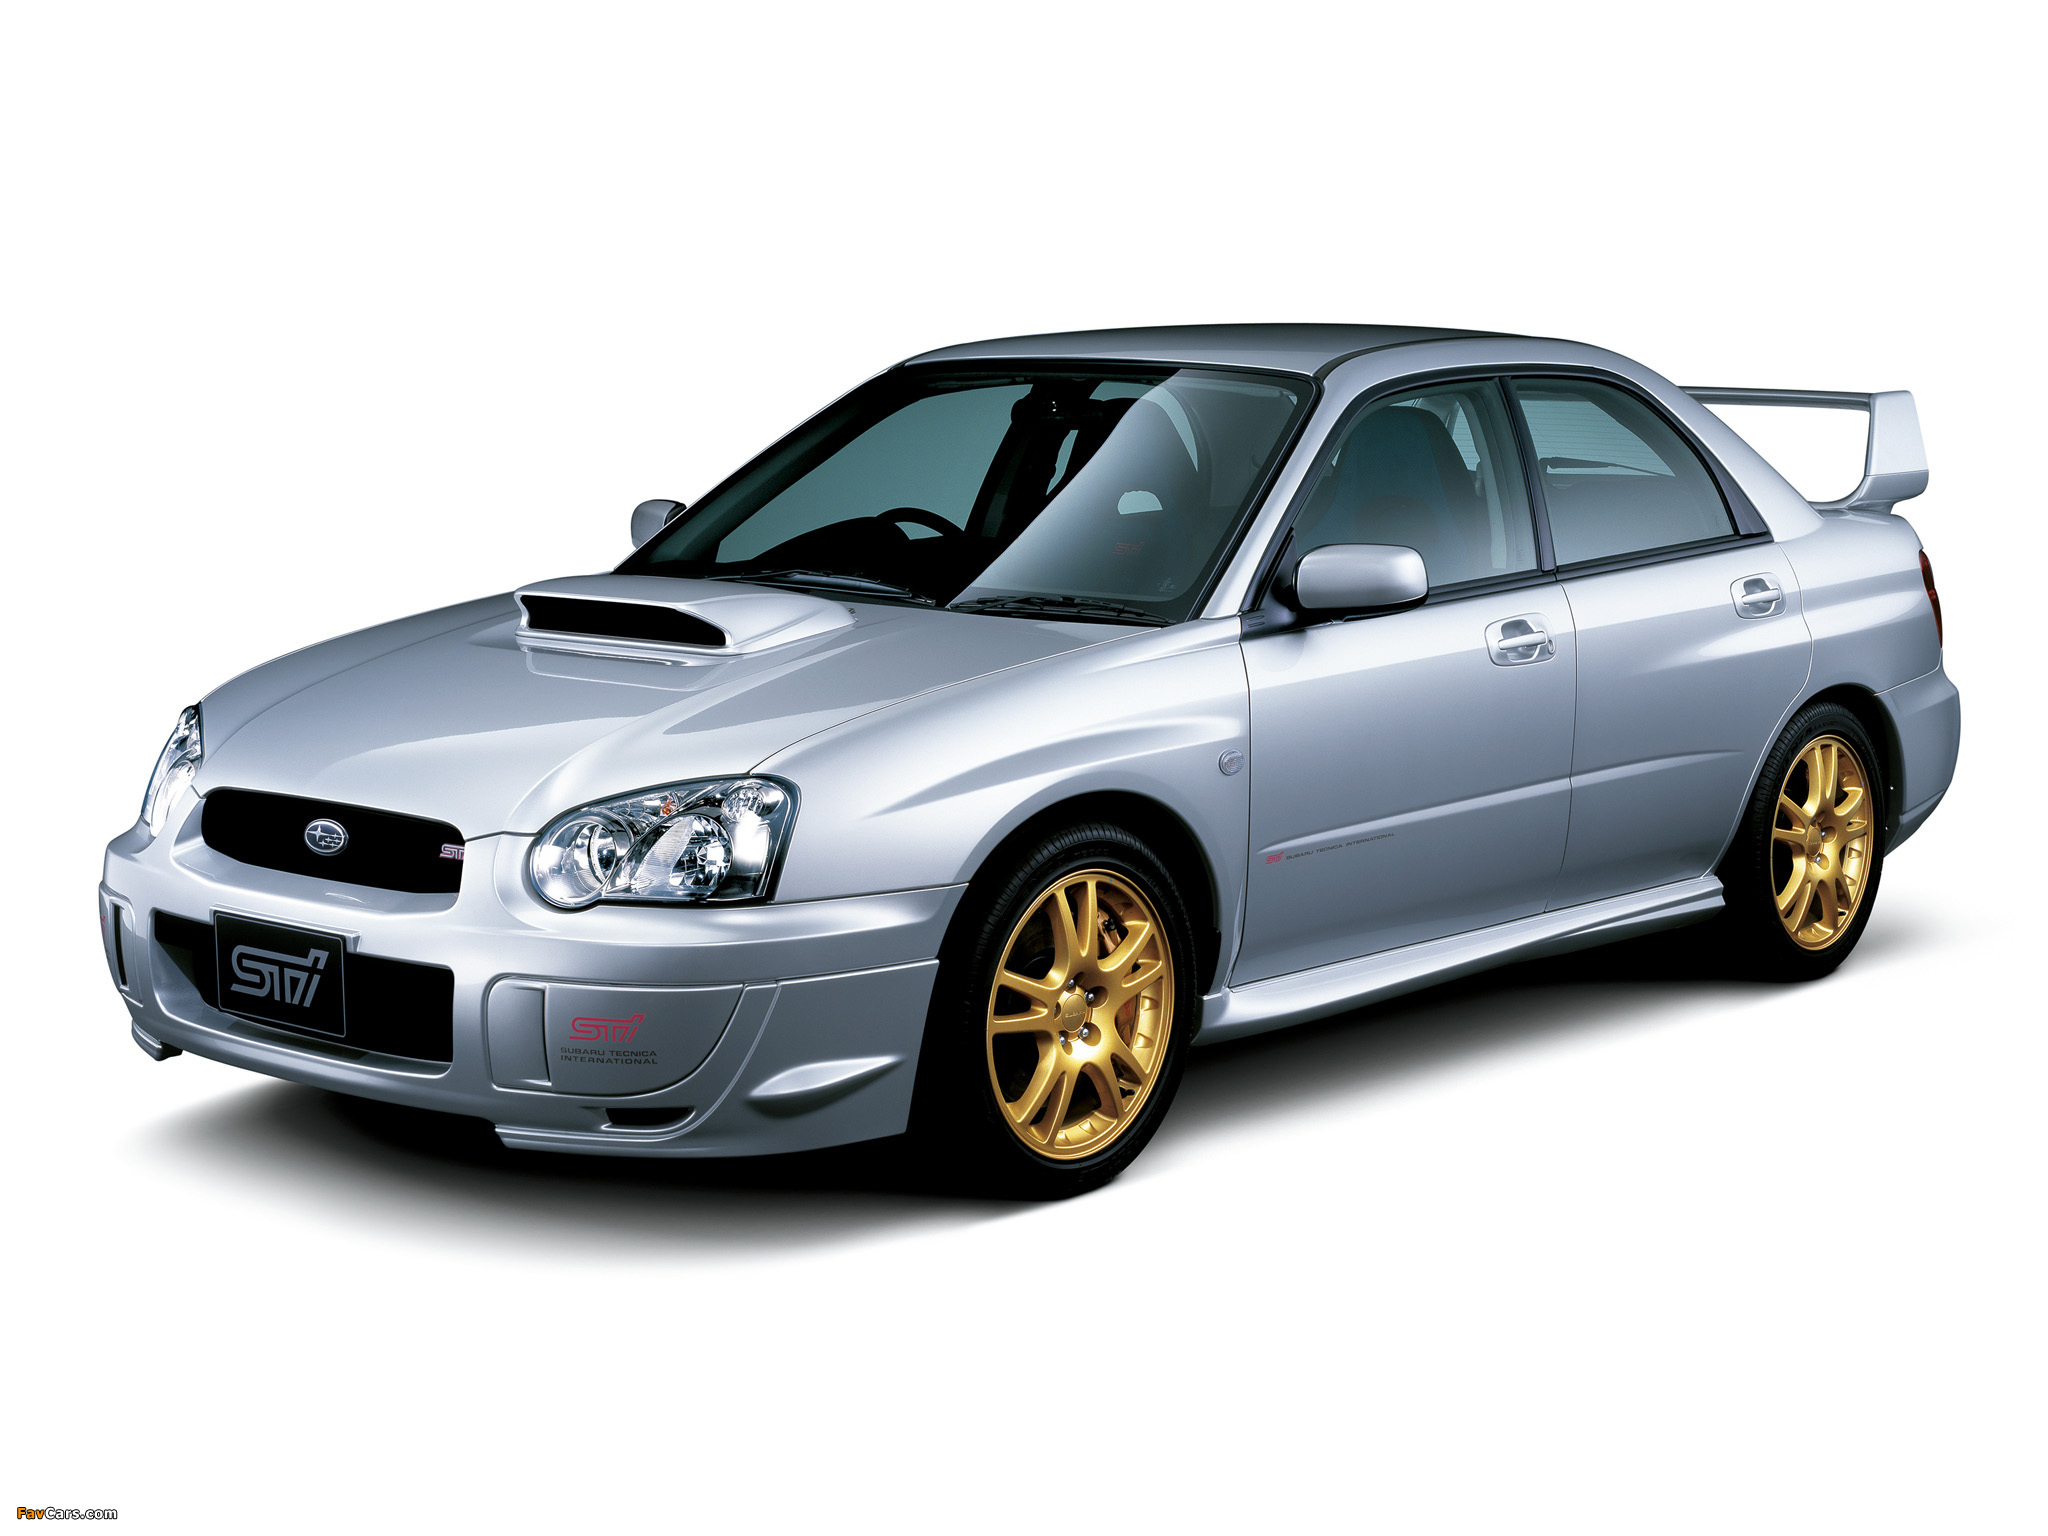 subaru impreza wrx sti 2003 05 pictures 2048x1536. Black Bedroom Furniture Sets. Home Design Ideas